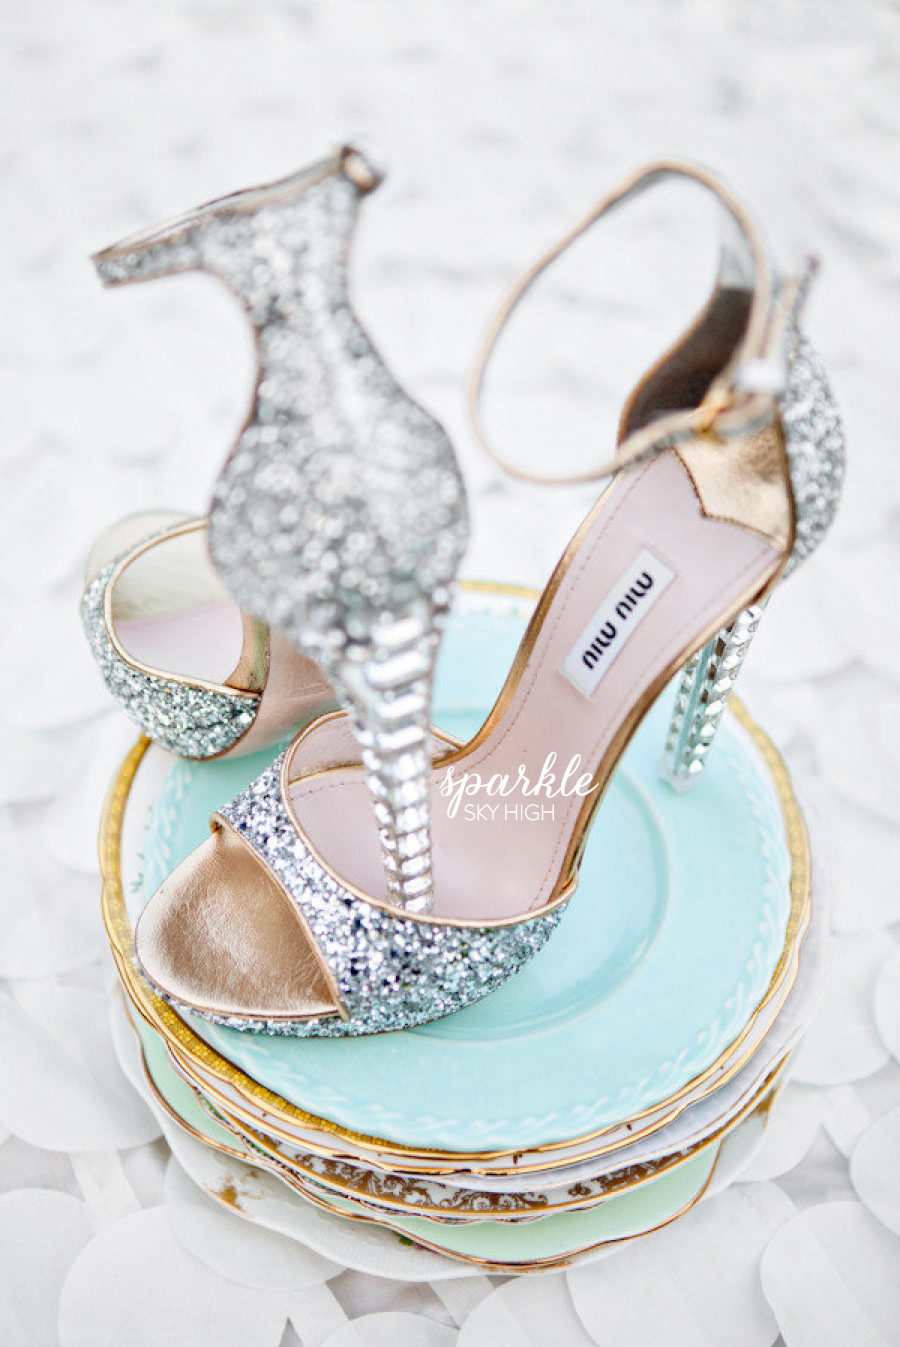 Favorite Wedding Gowns, Shoes & More from 2013